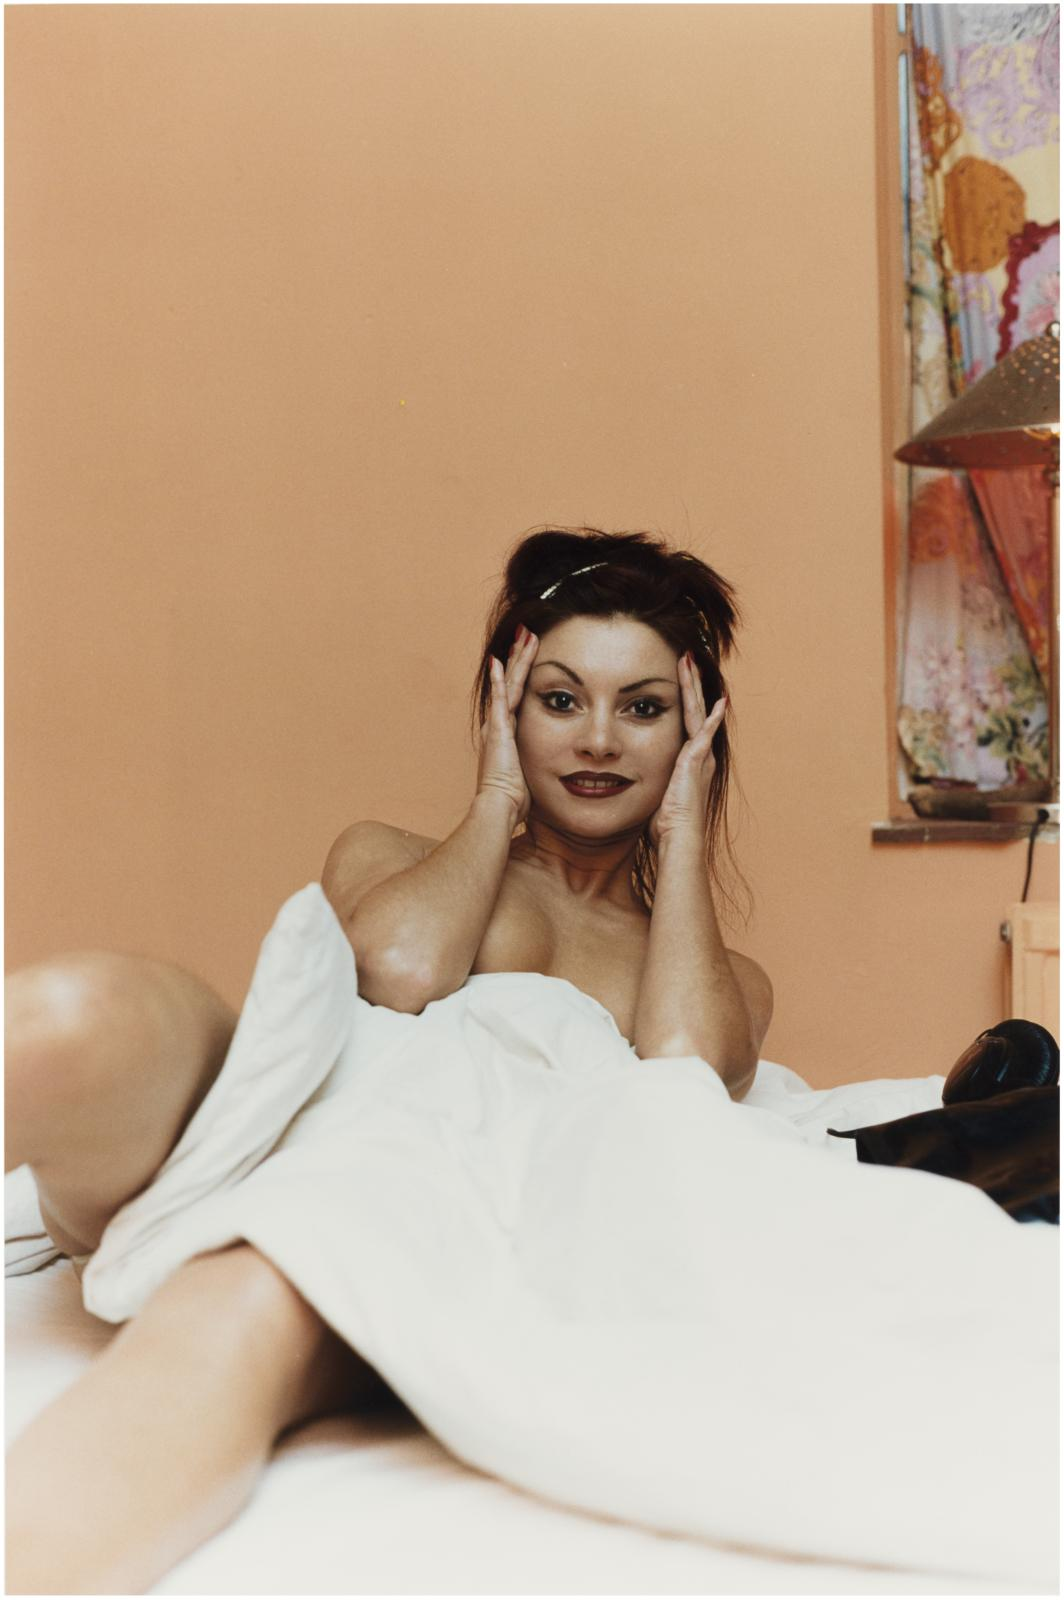 A nude adult with long dark hair, arched eyebrows, and dark lipstick holds their hands up to the sides of their face and looks into the camera. They are leaning back toward a peach-colored wall, and their torso is obscured by a white bedsheet.